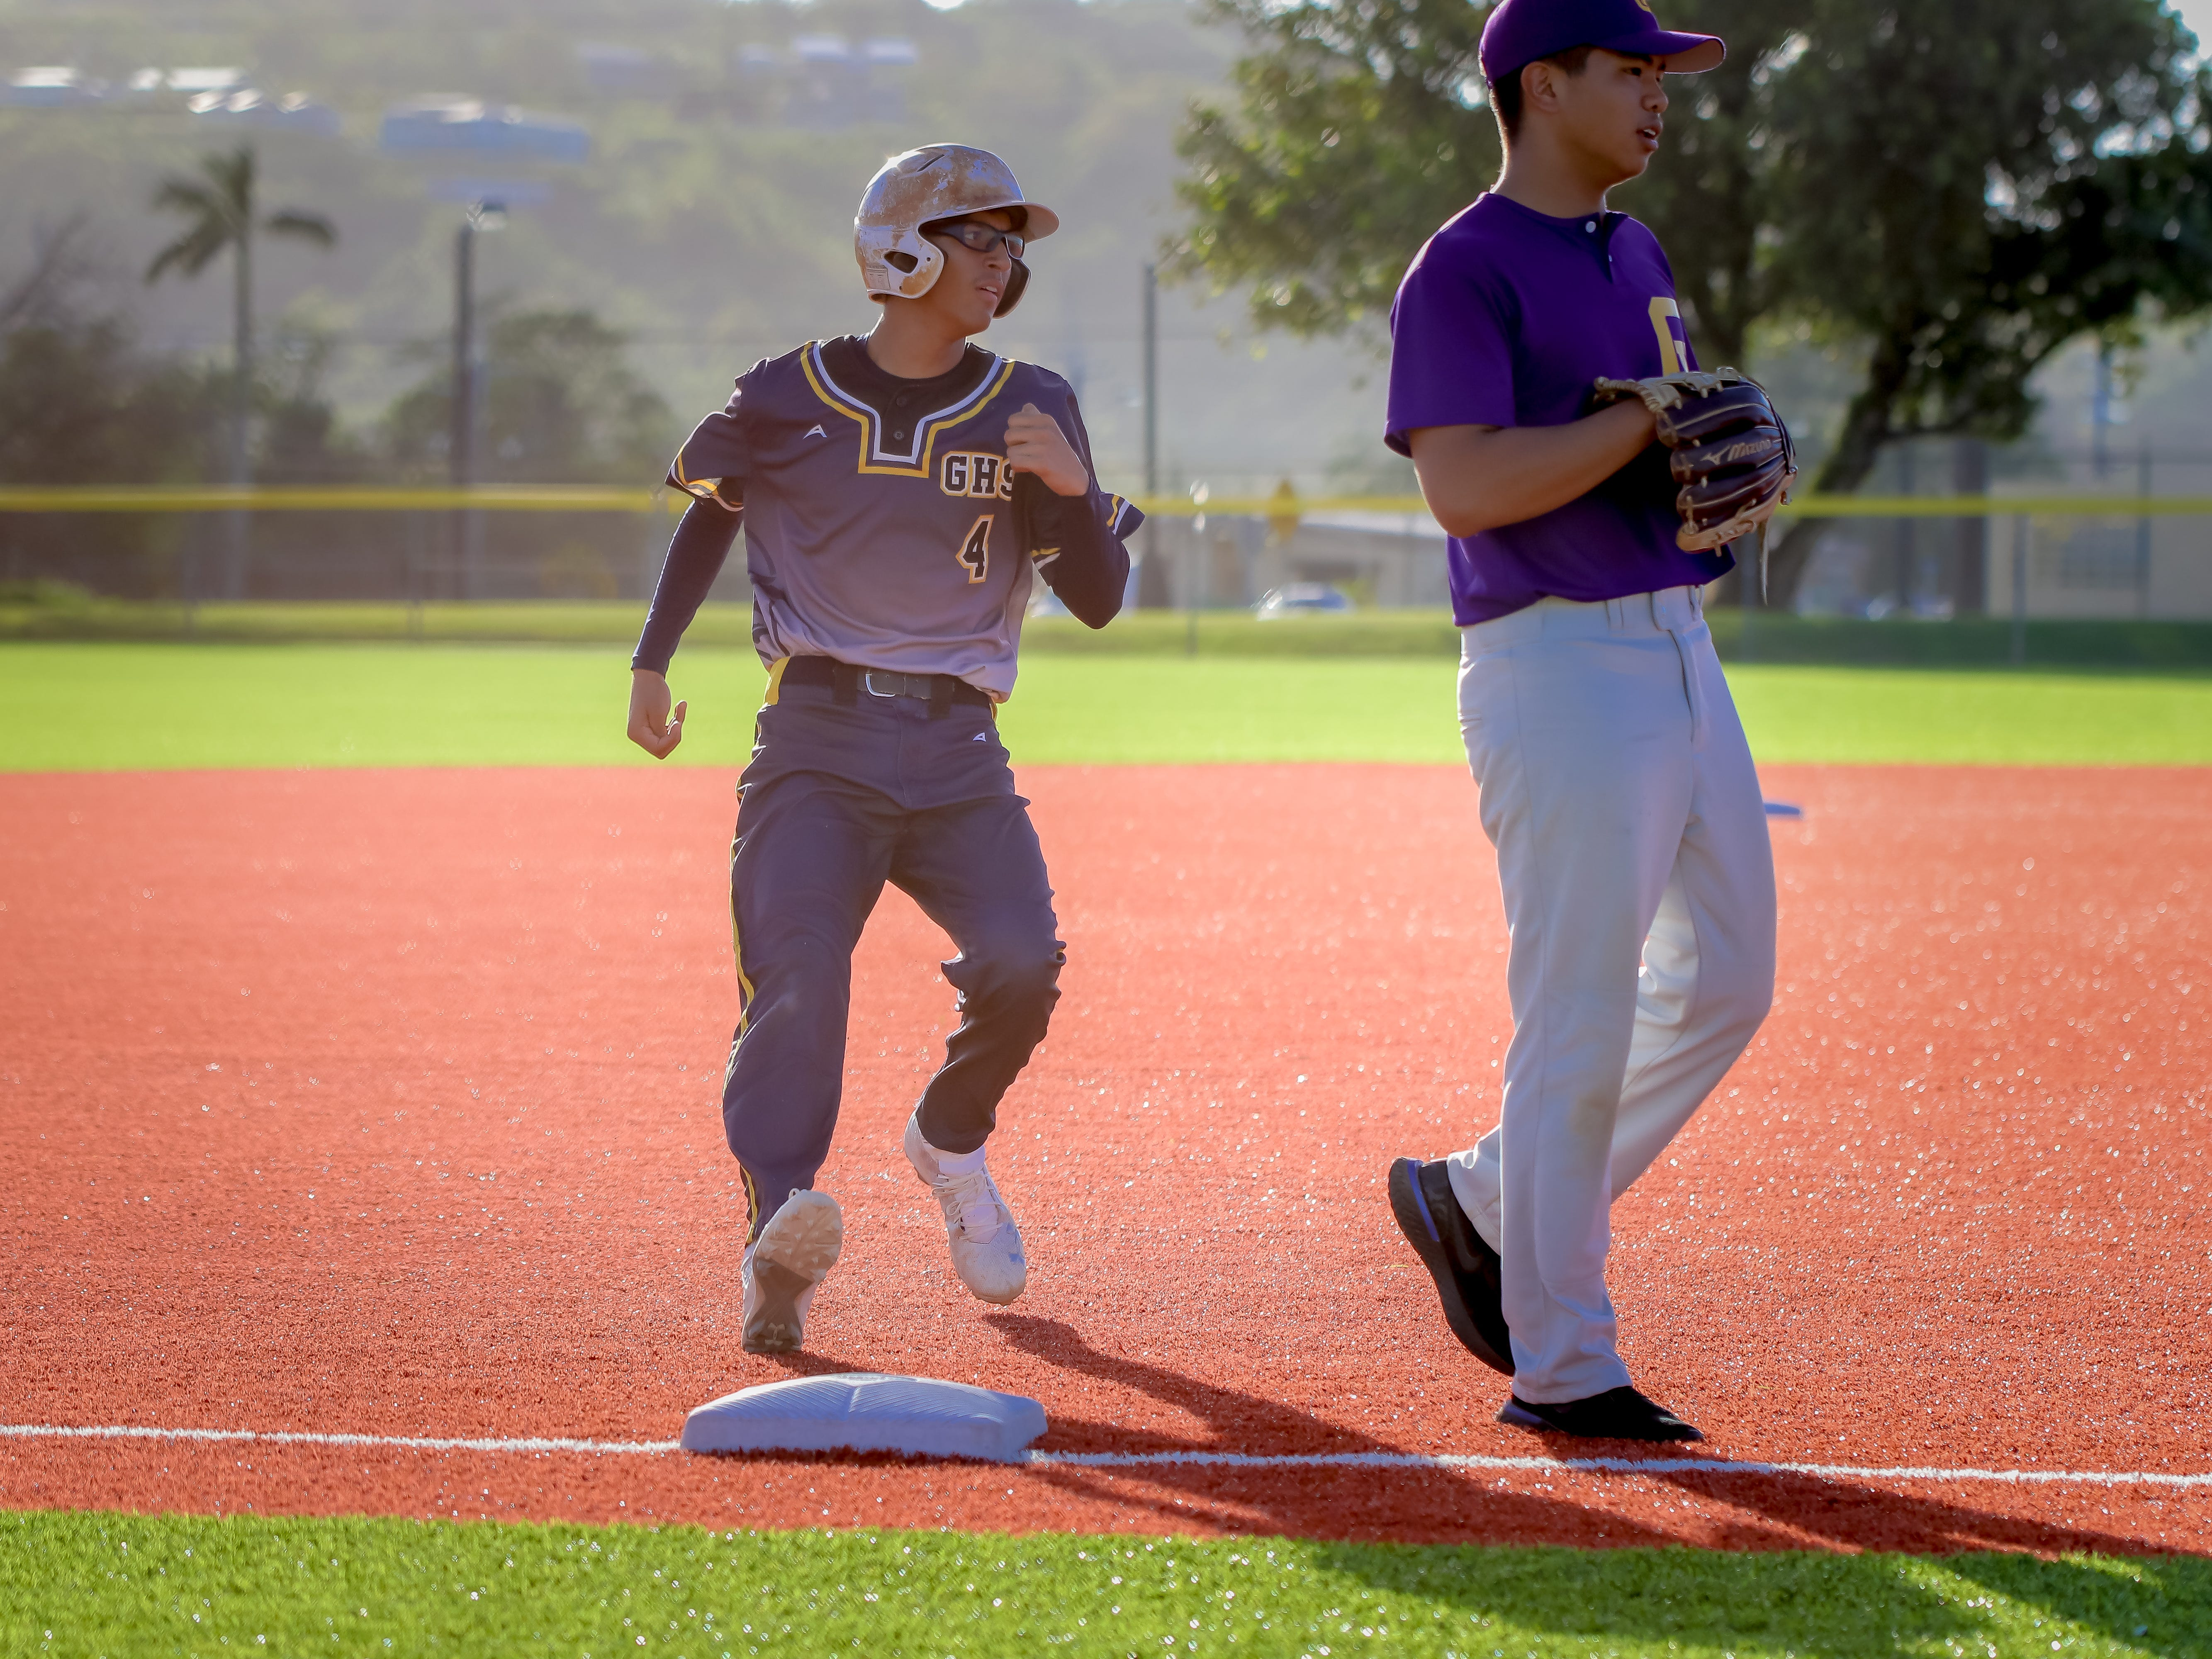 Ruben Ramirez of Guam High steals third base.